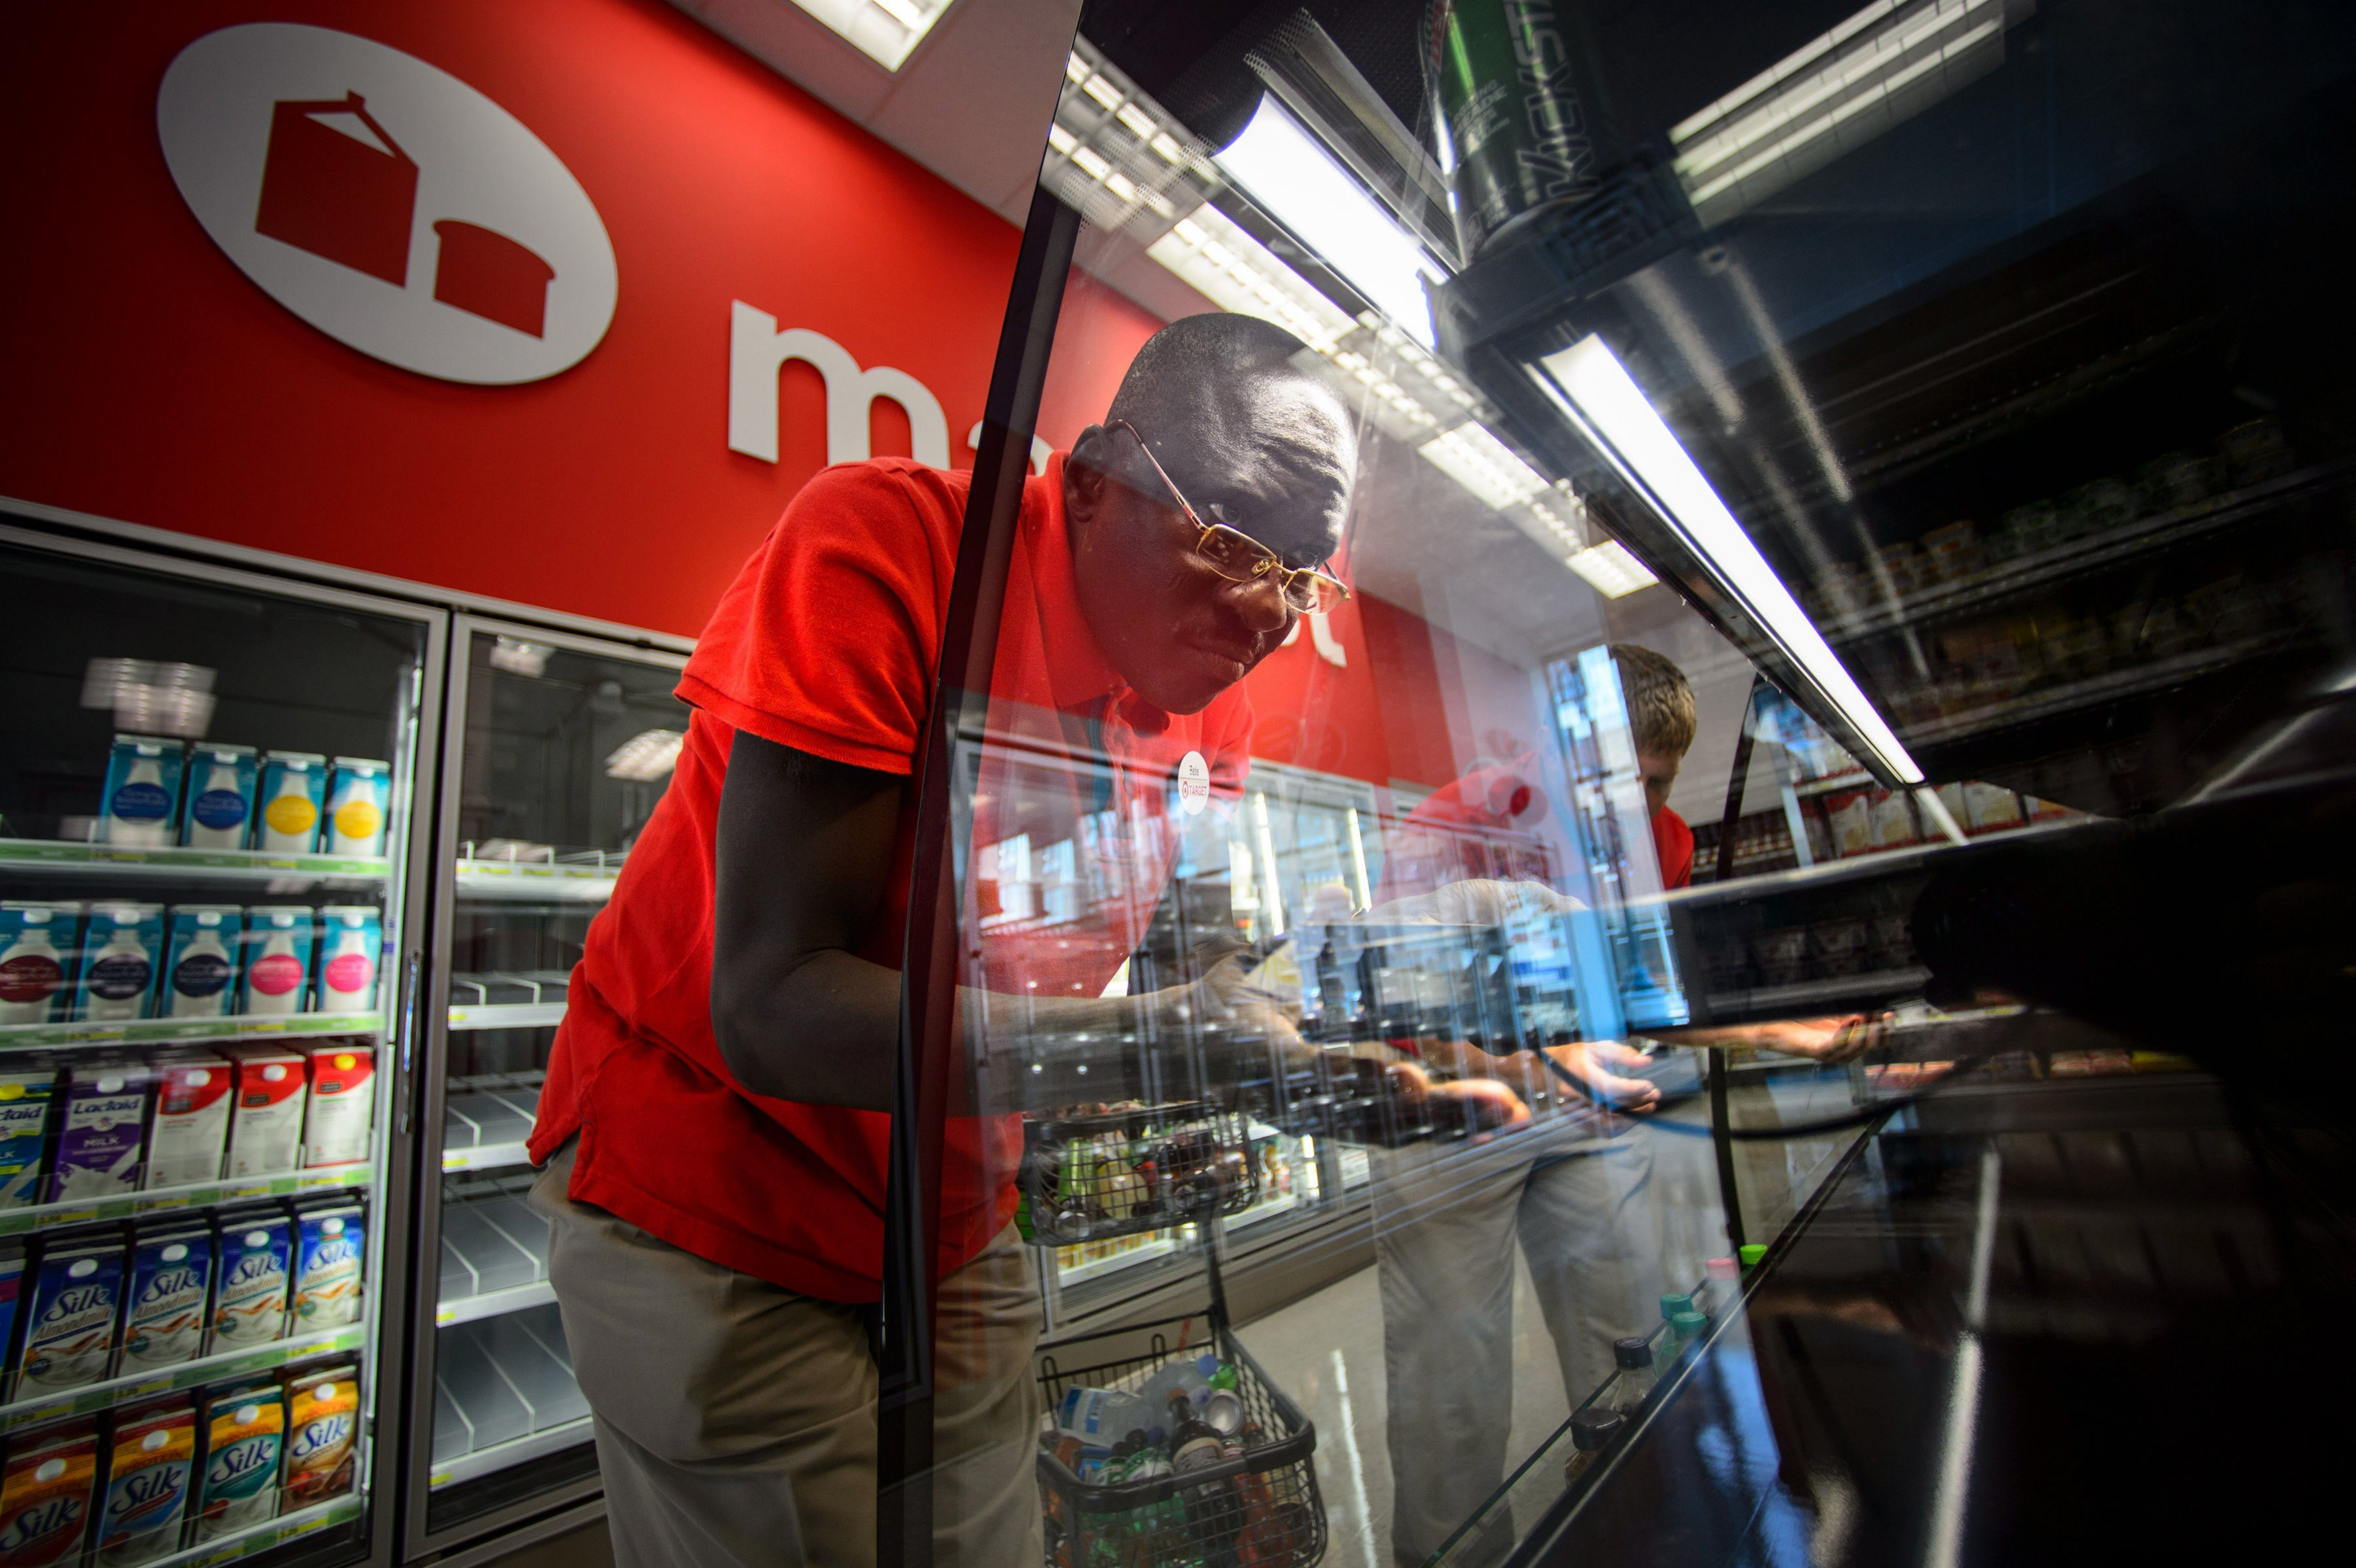 A Target worker assembles a soft drink display case in the new TargetExpress in Dinkytown, Minn., near the University of Minnesota.